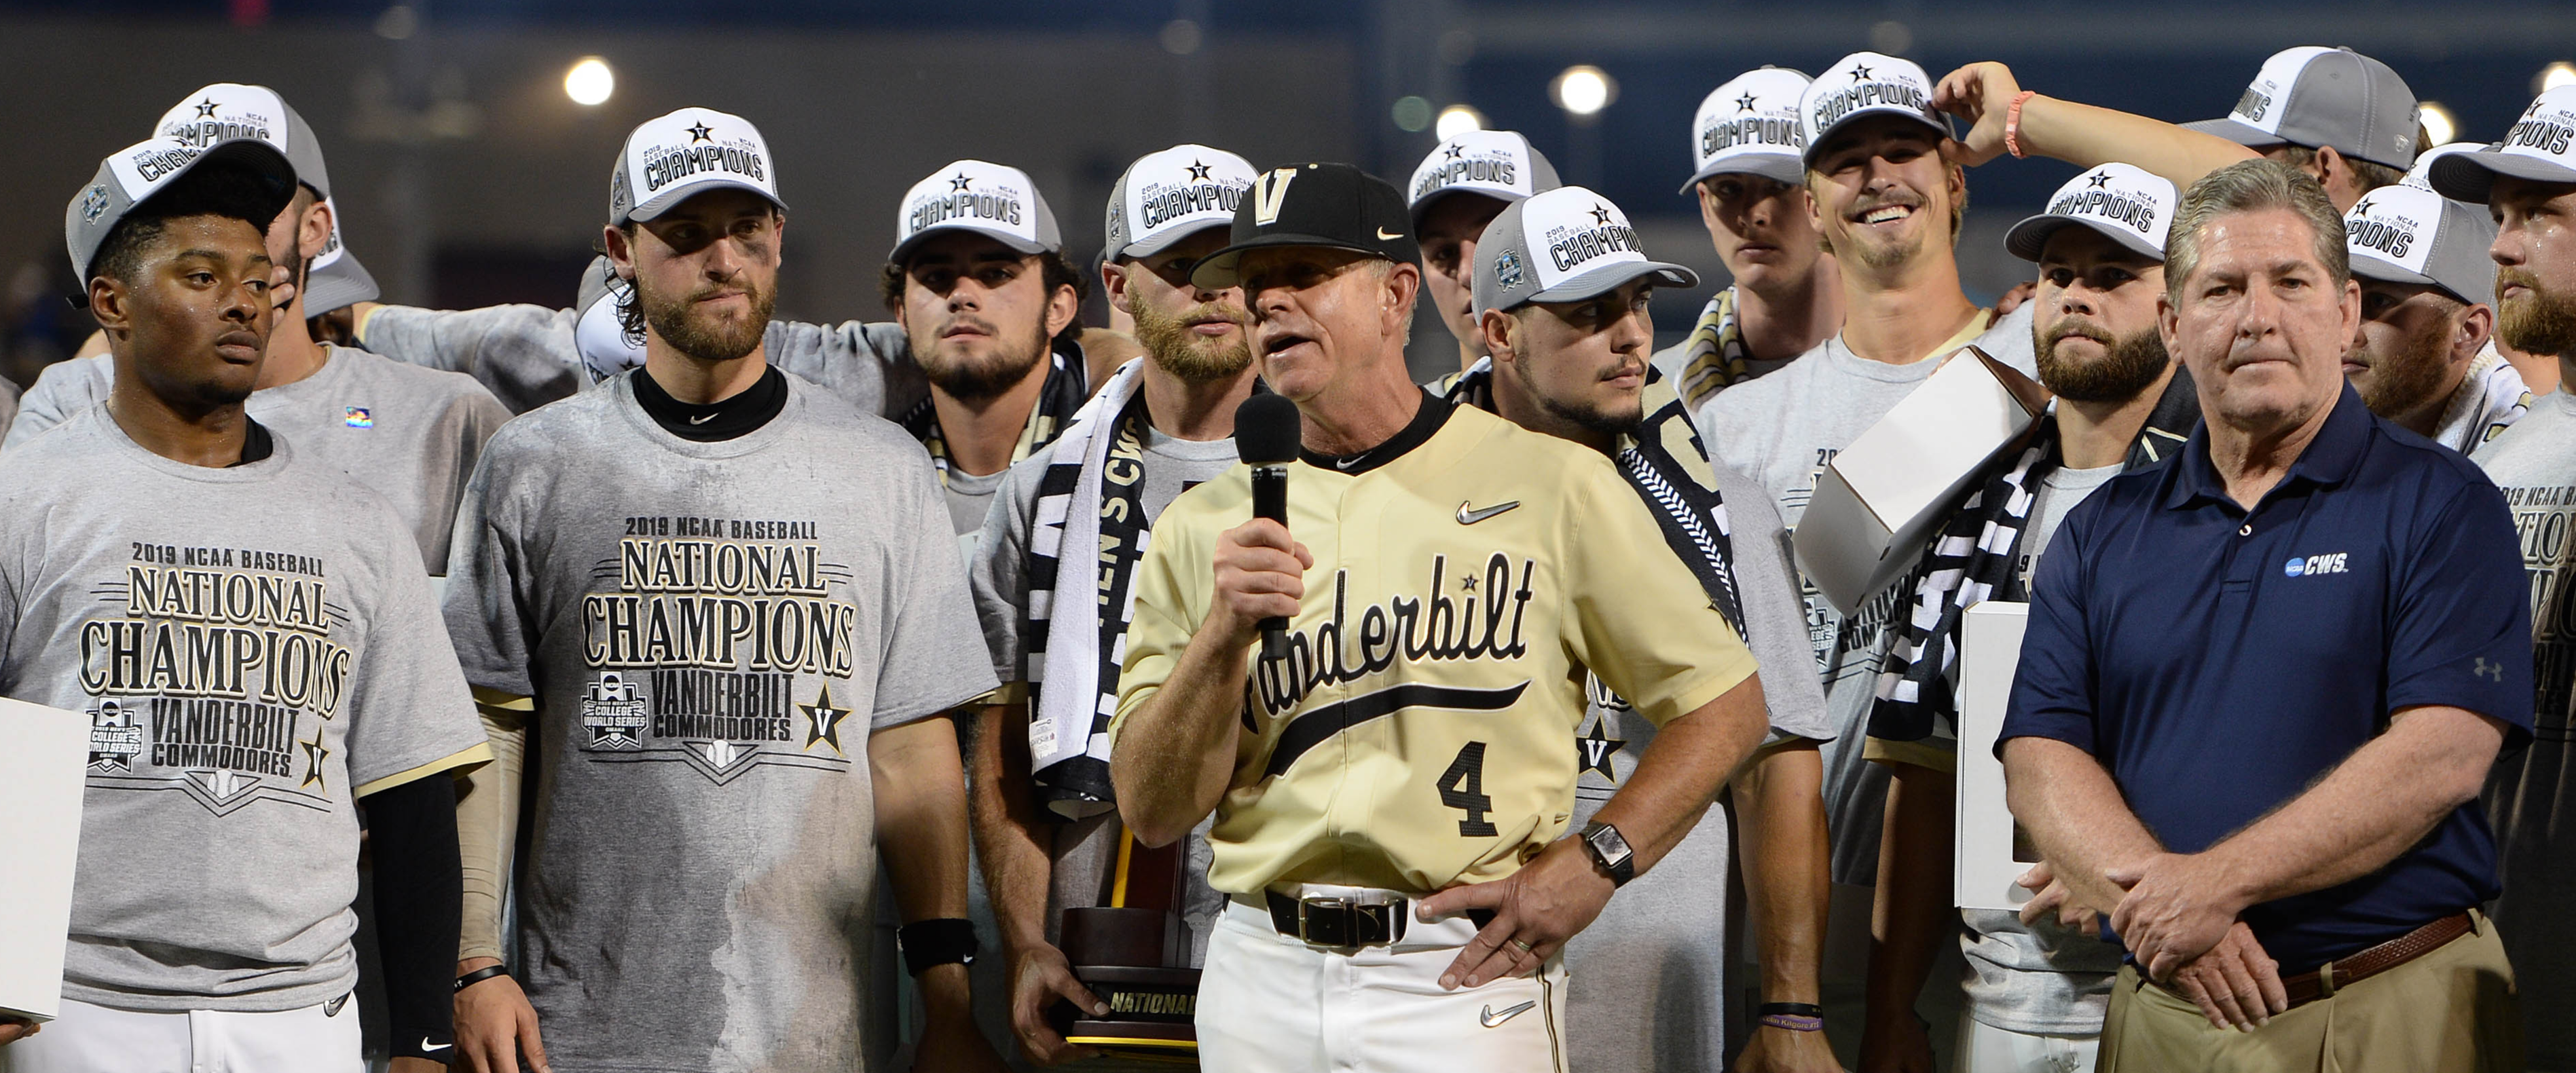 Tim Corbin is the Nick Saban of college baseball